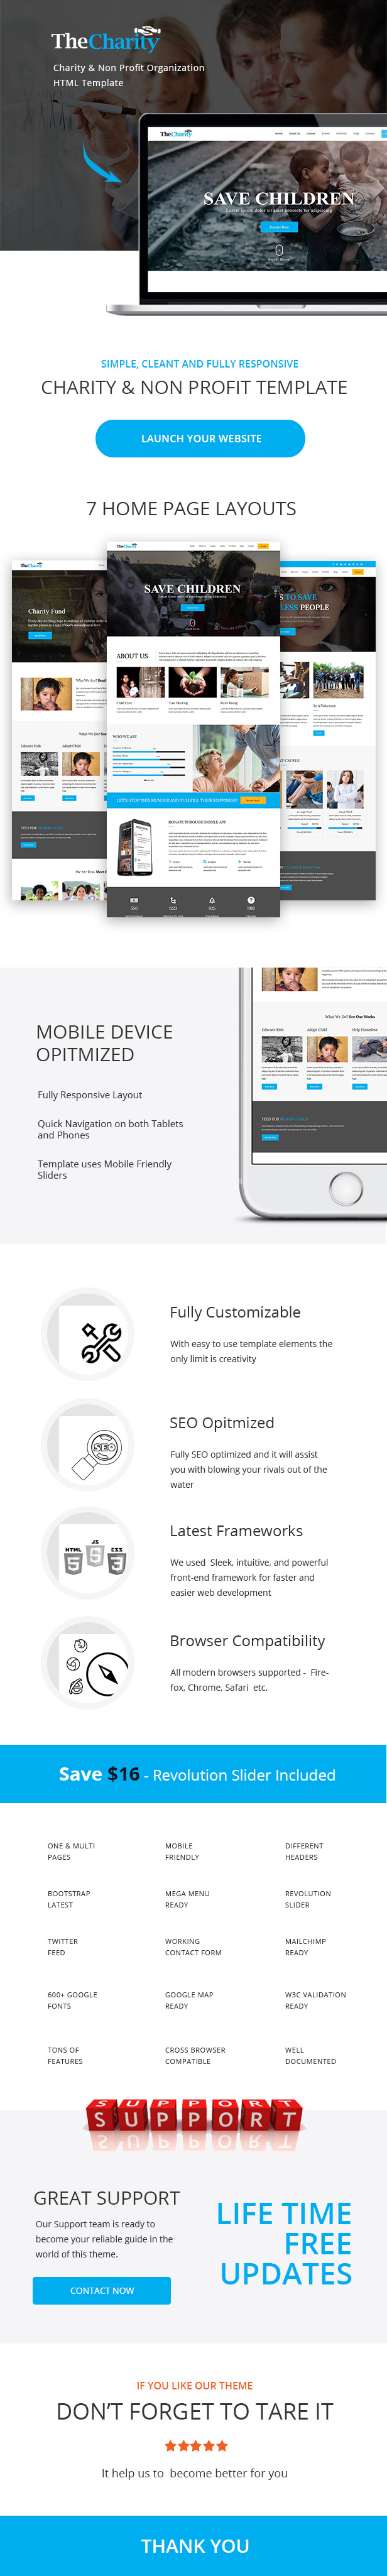 the charity html template for charity non profit organization by